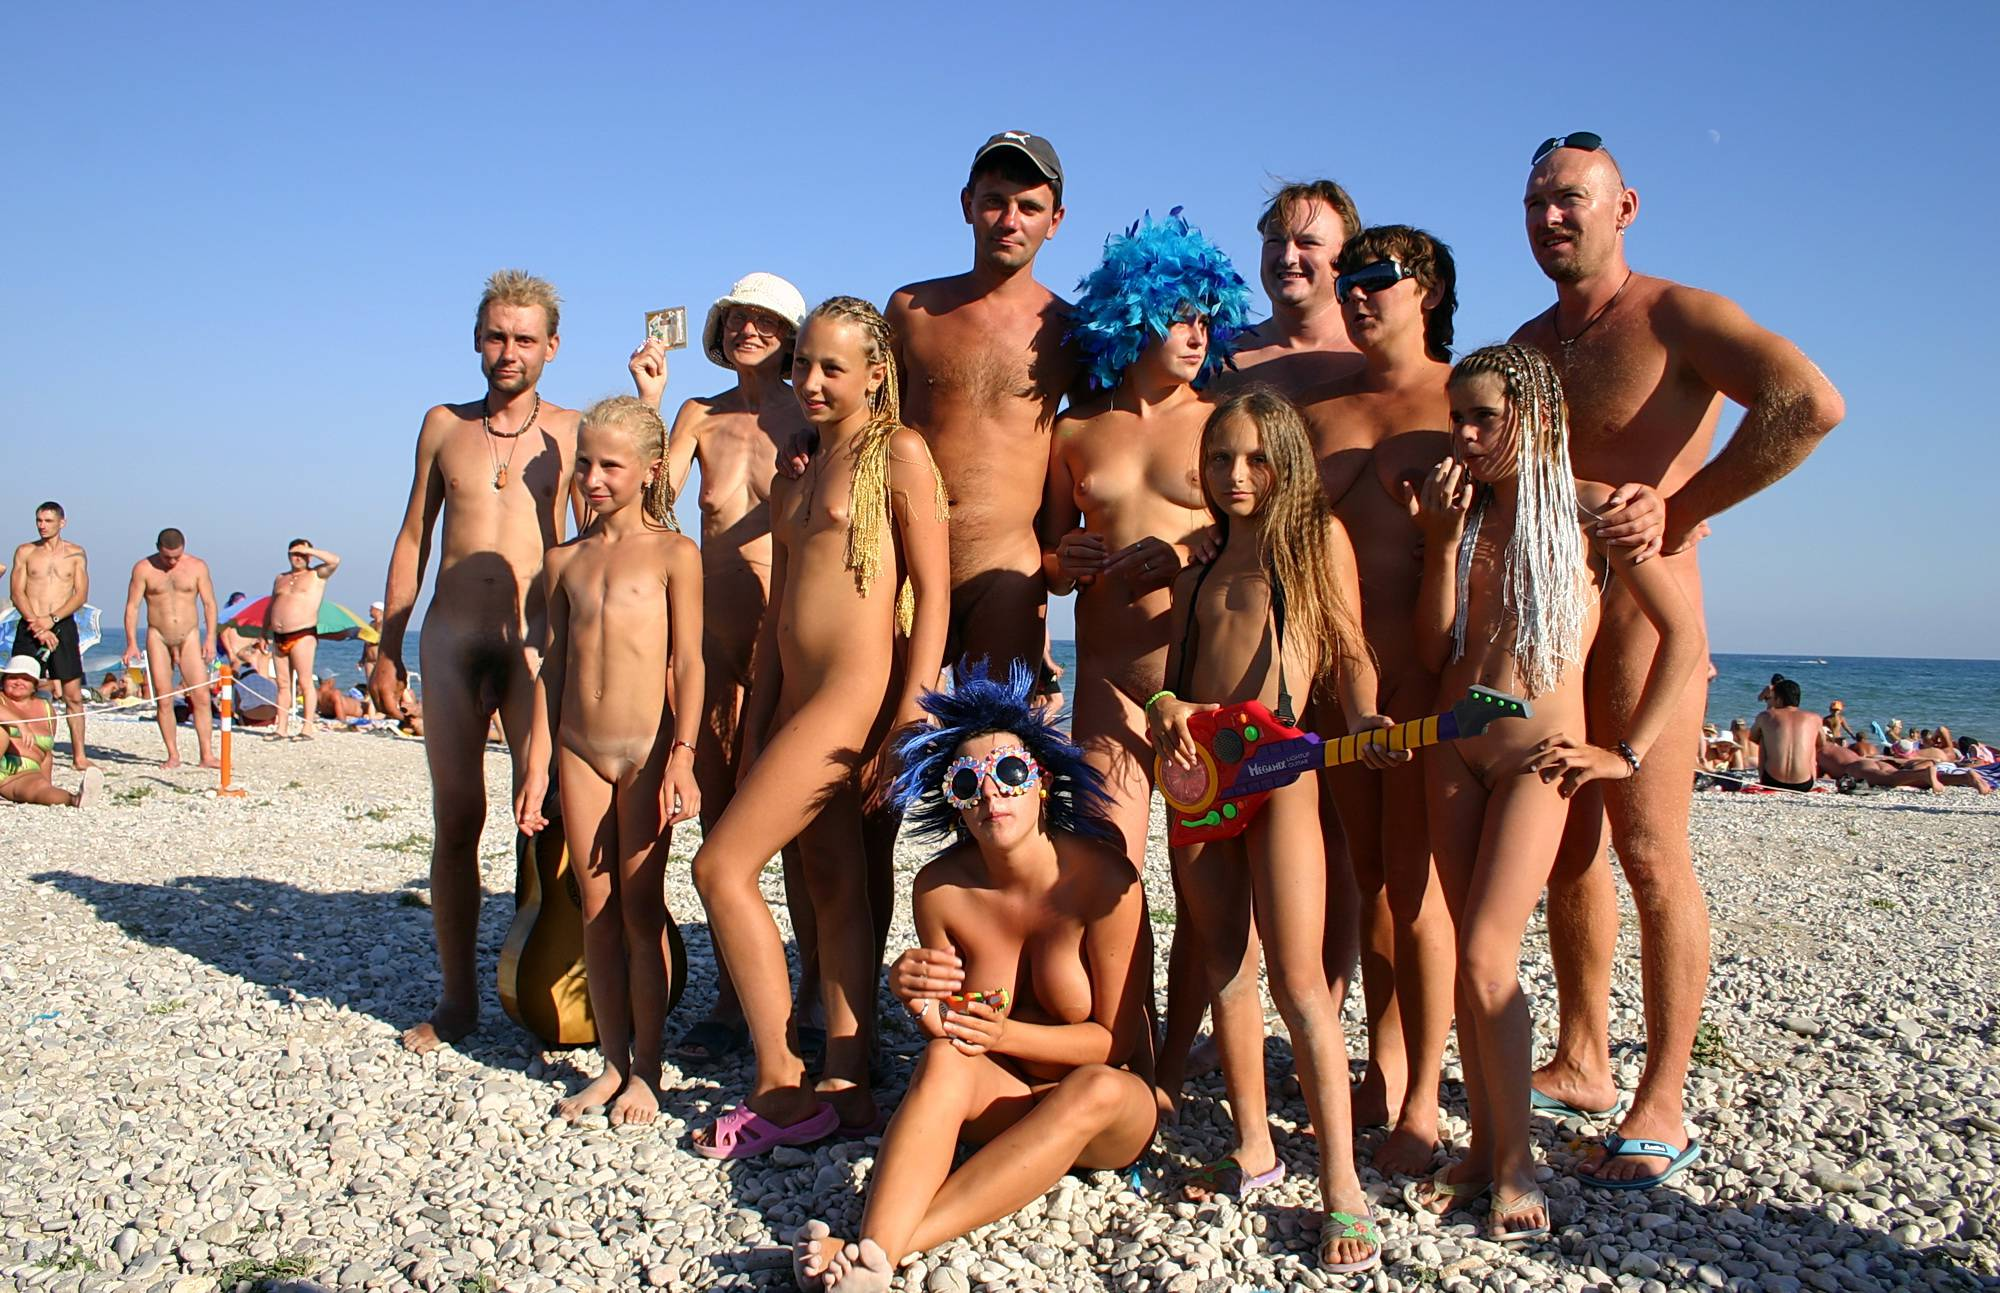 Blue Haired Sand Dance - 1